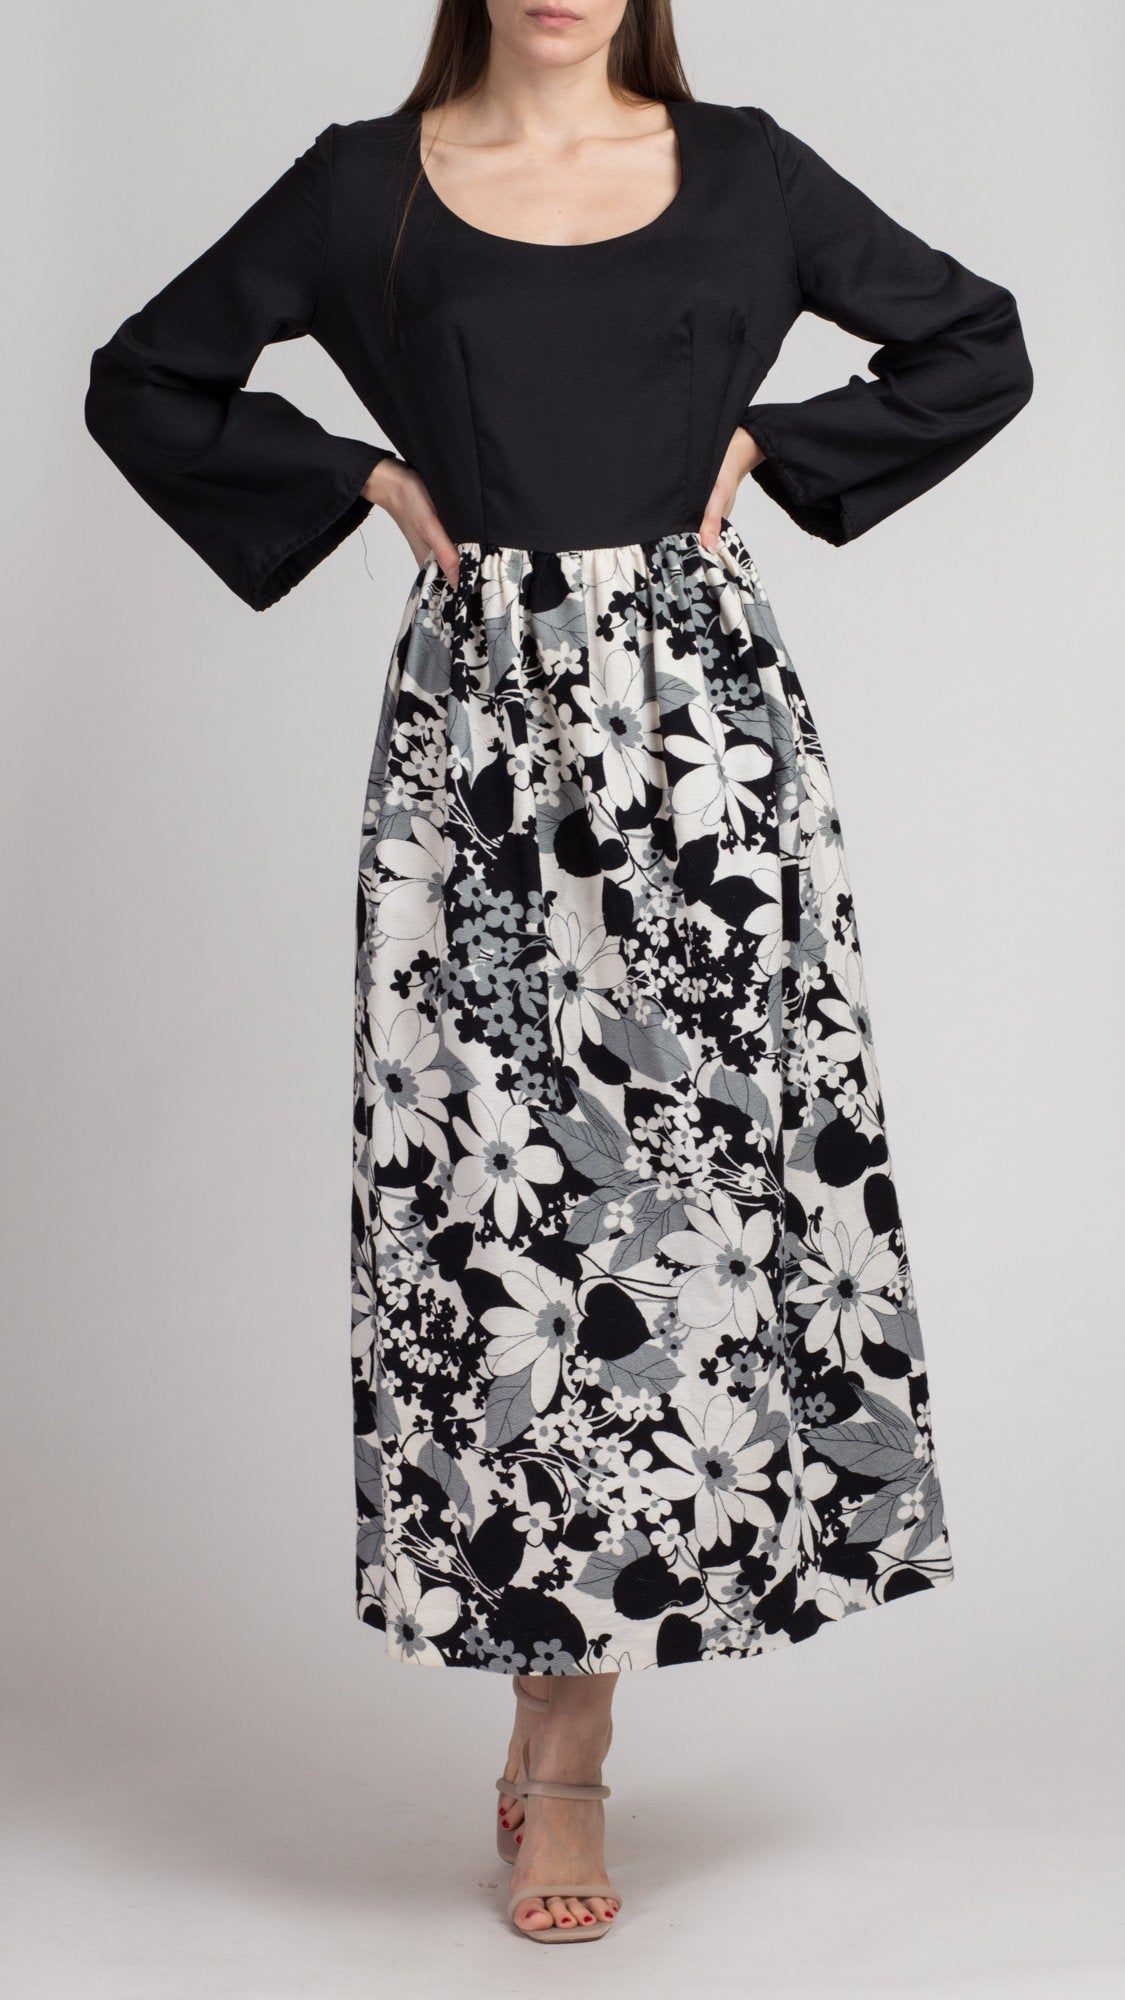 Medium to Large 70s Black /& White Floral Maxi Dress Vintage Long Sleeve Two Tone A Line Dress